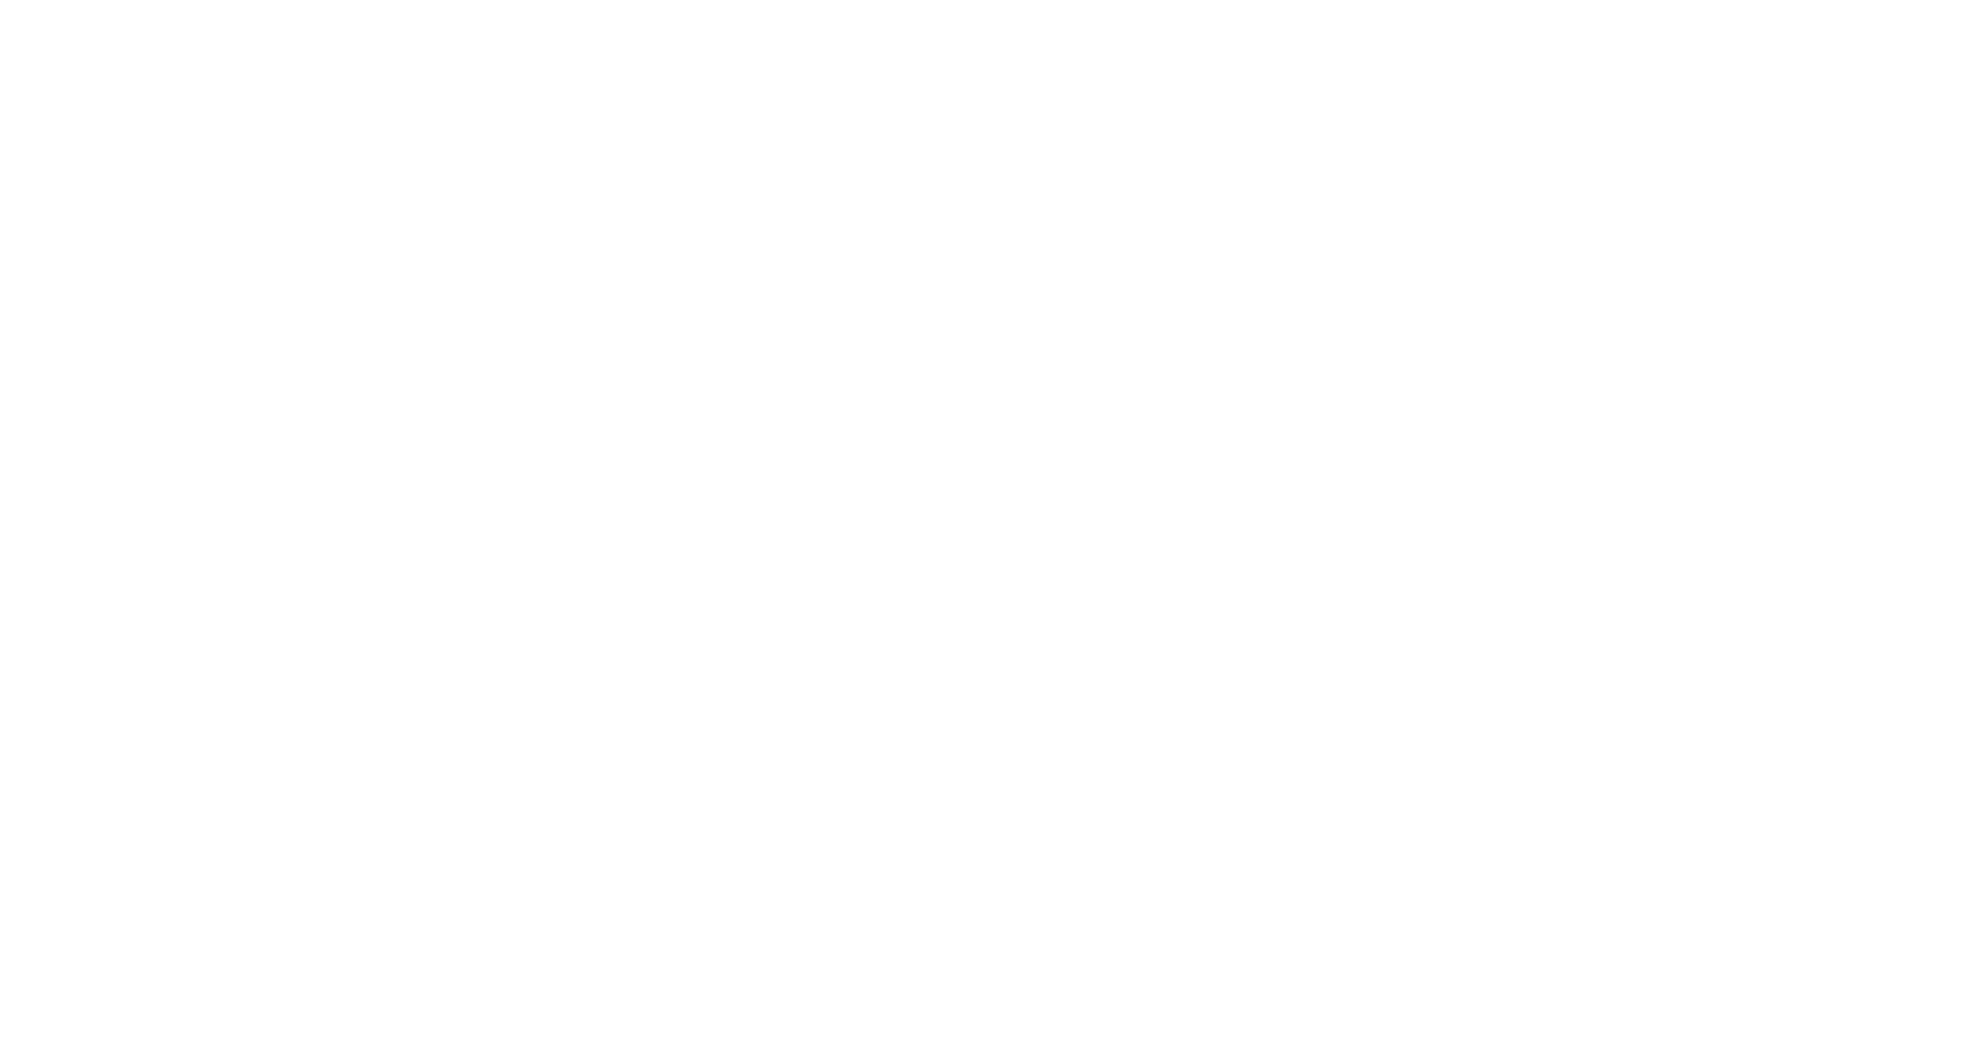 THOMAS DEHEE CREATION EN BOIS